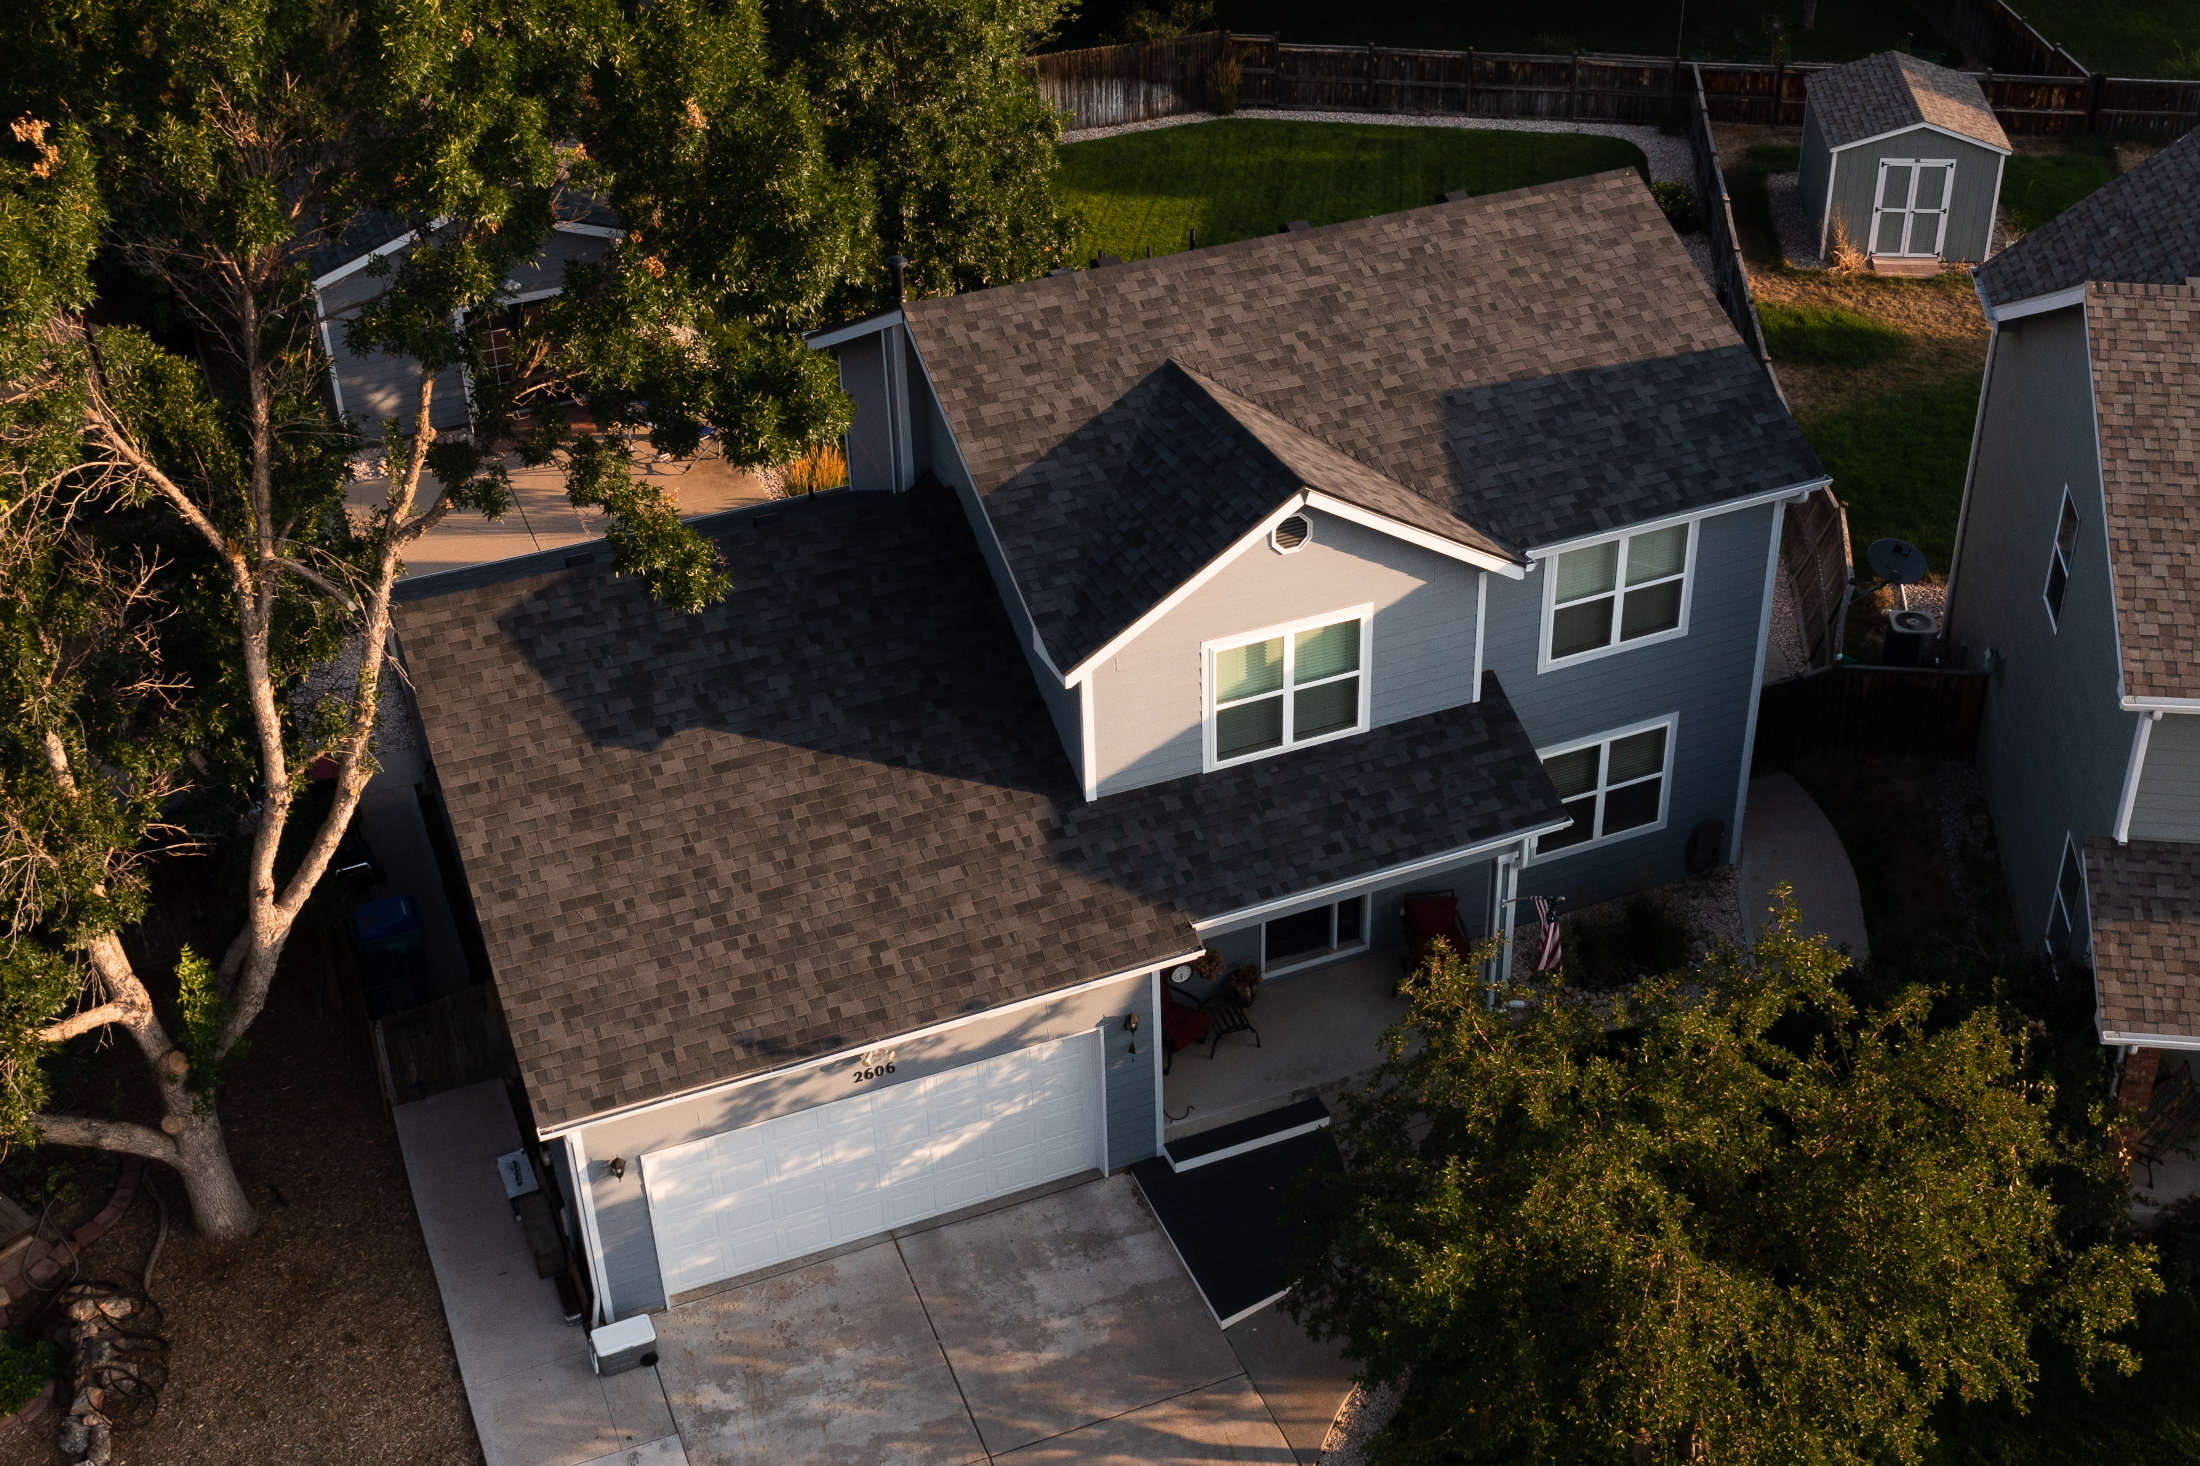 Replaced the shingle system (underlayment drip edge, flashings) with Malarkey Legacy Class IV shingles